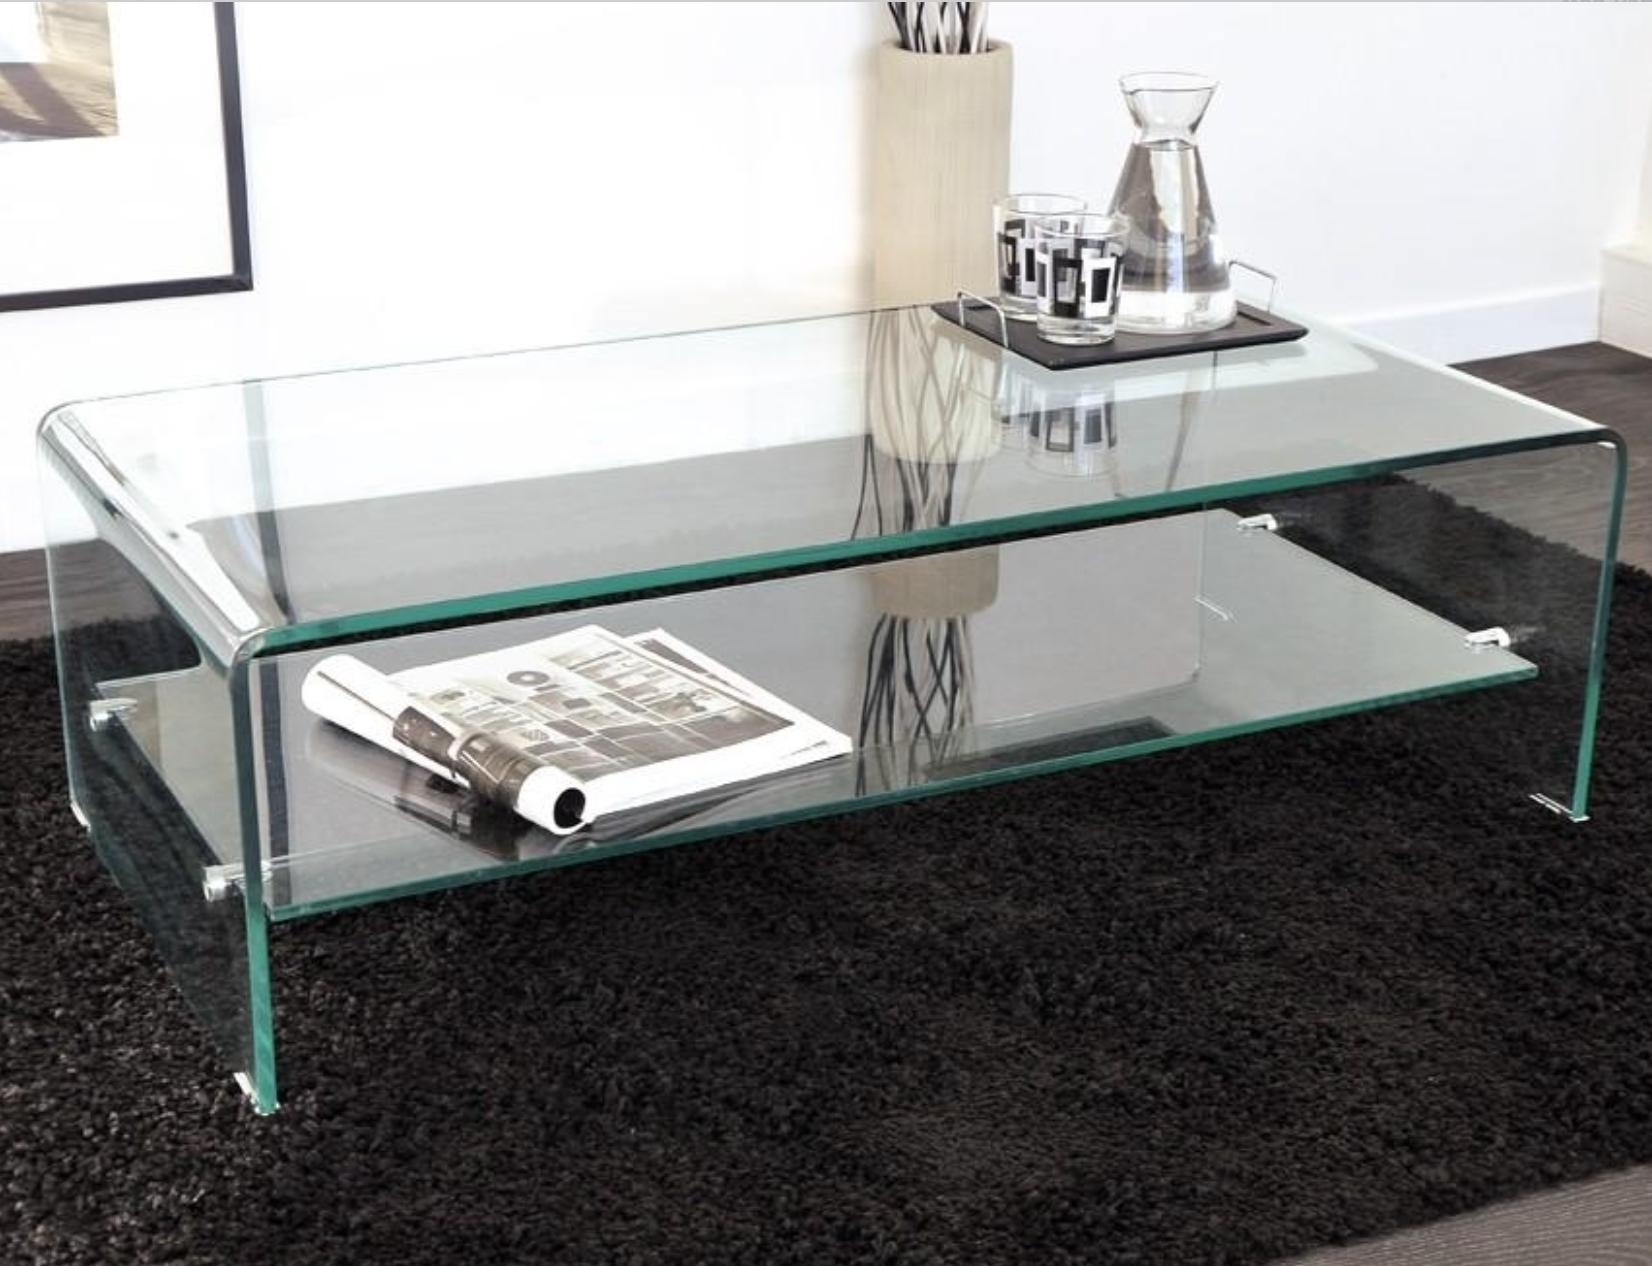 Table basse verre tremp stella for Table de television en verre